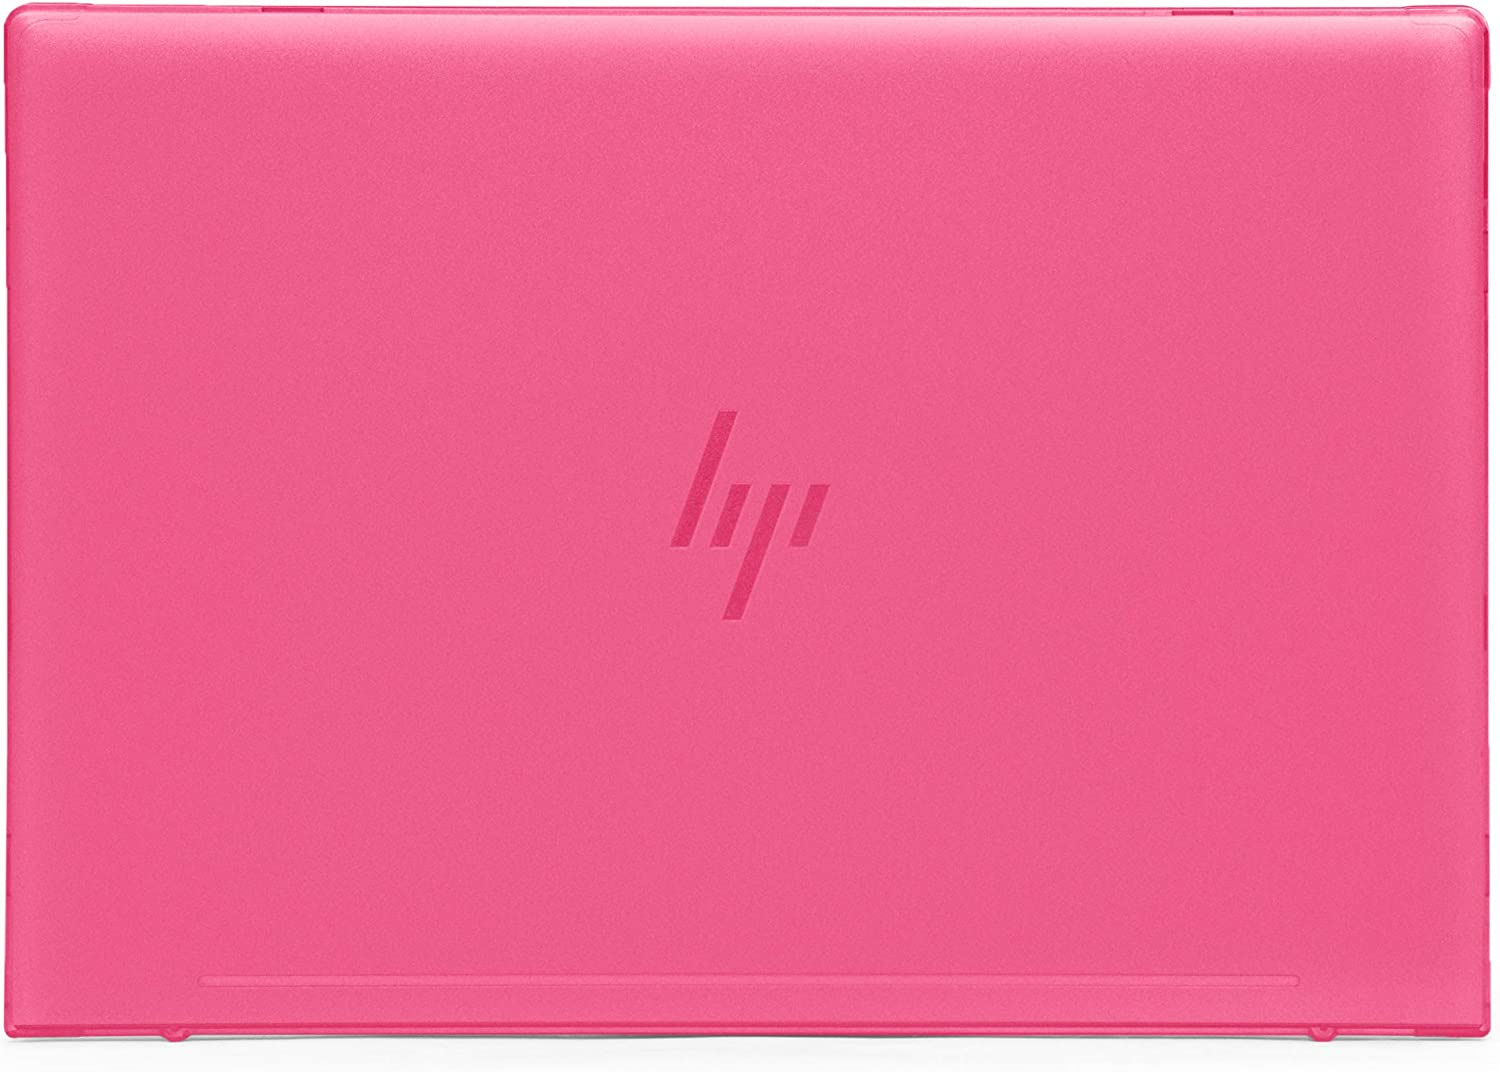 """mCover Hard Shell Case for 13.3"""" HP Envy 13-AHxxxx / 13-AQ0000 Series (NOT Compatible with Other HP Series) Laptop PCs - Envy13-AH-AQ Pink"""